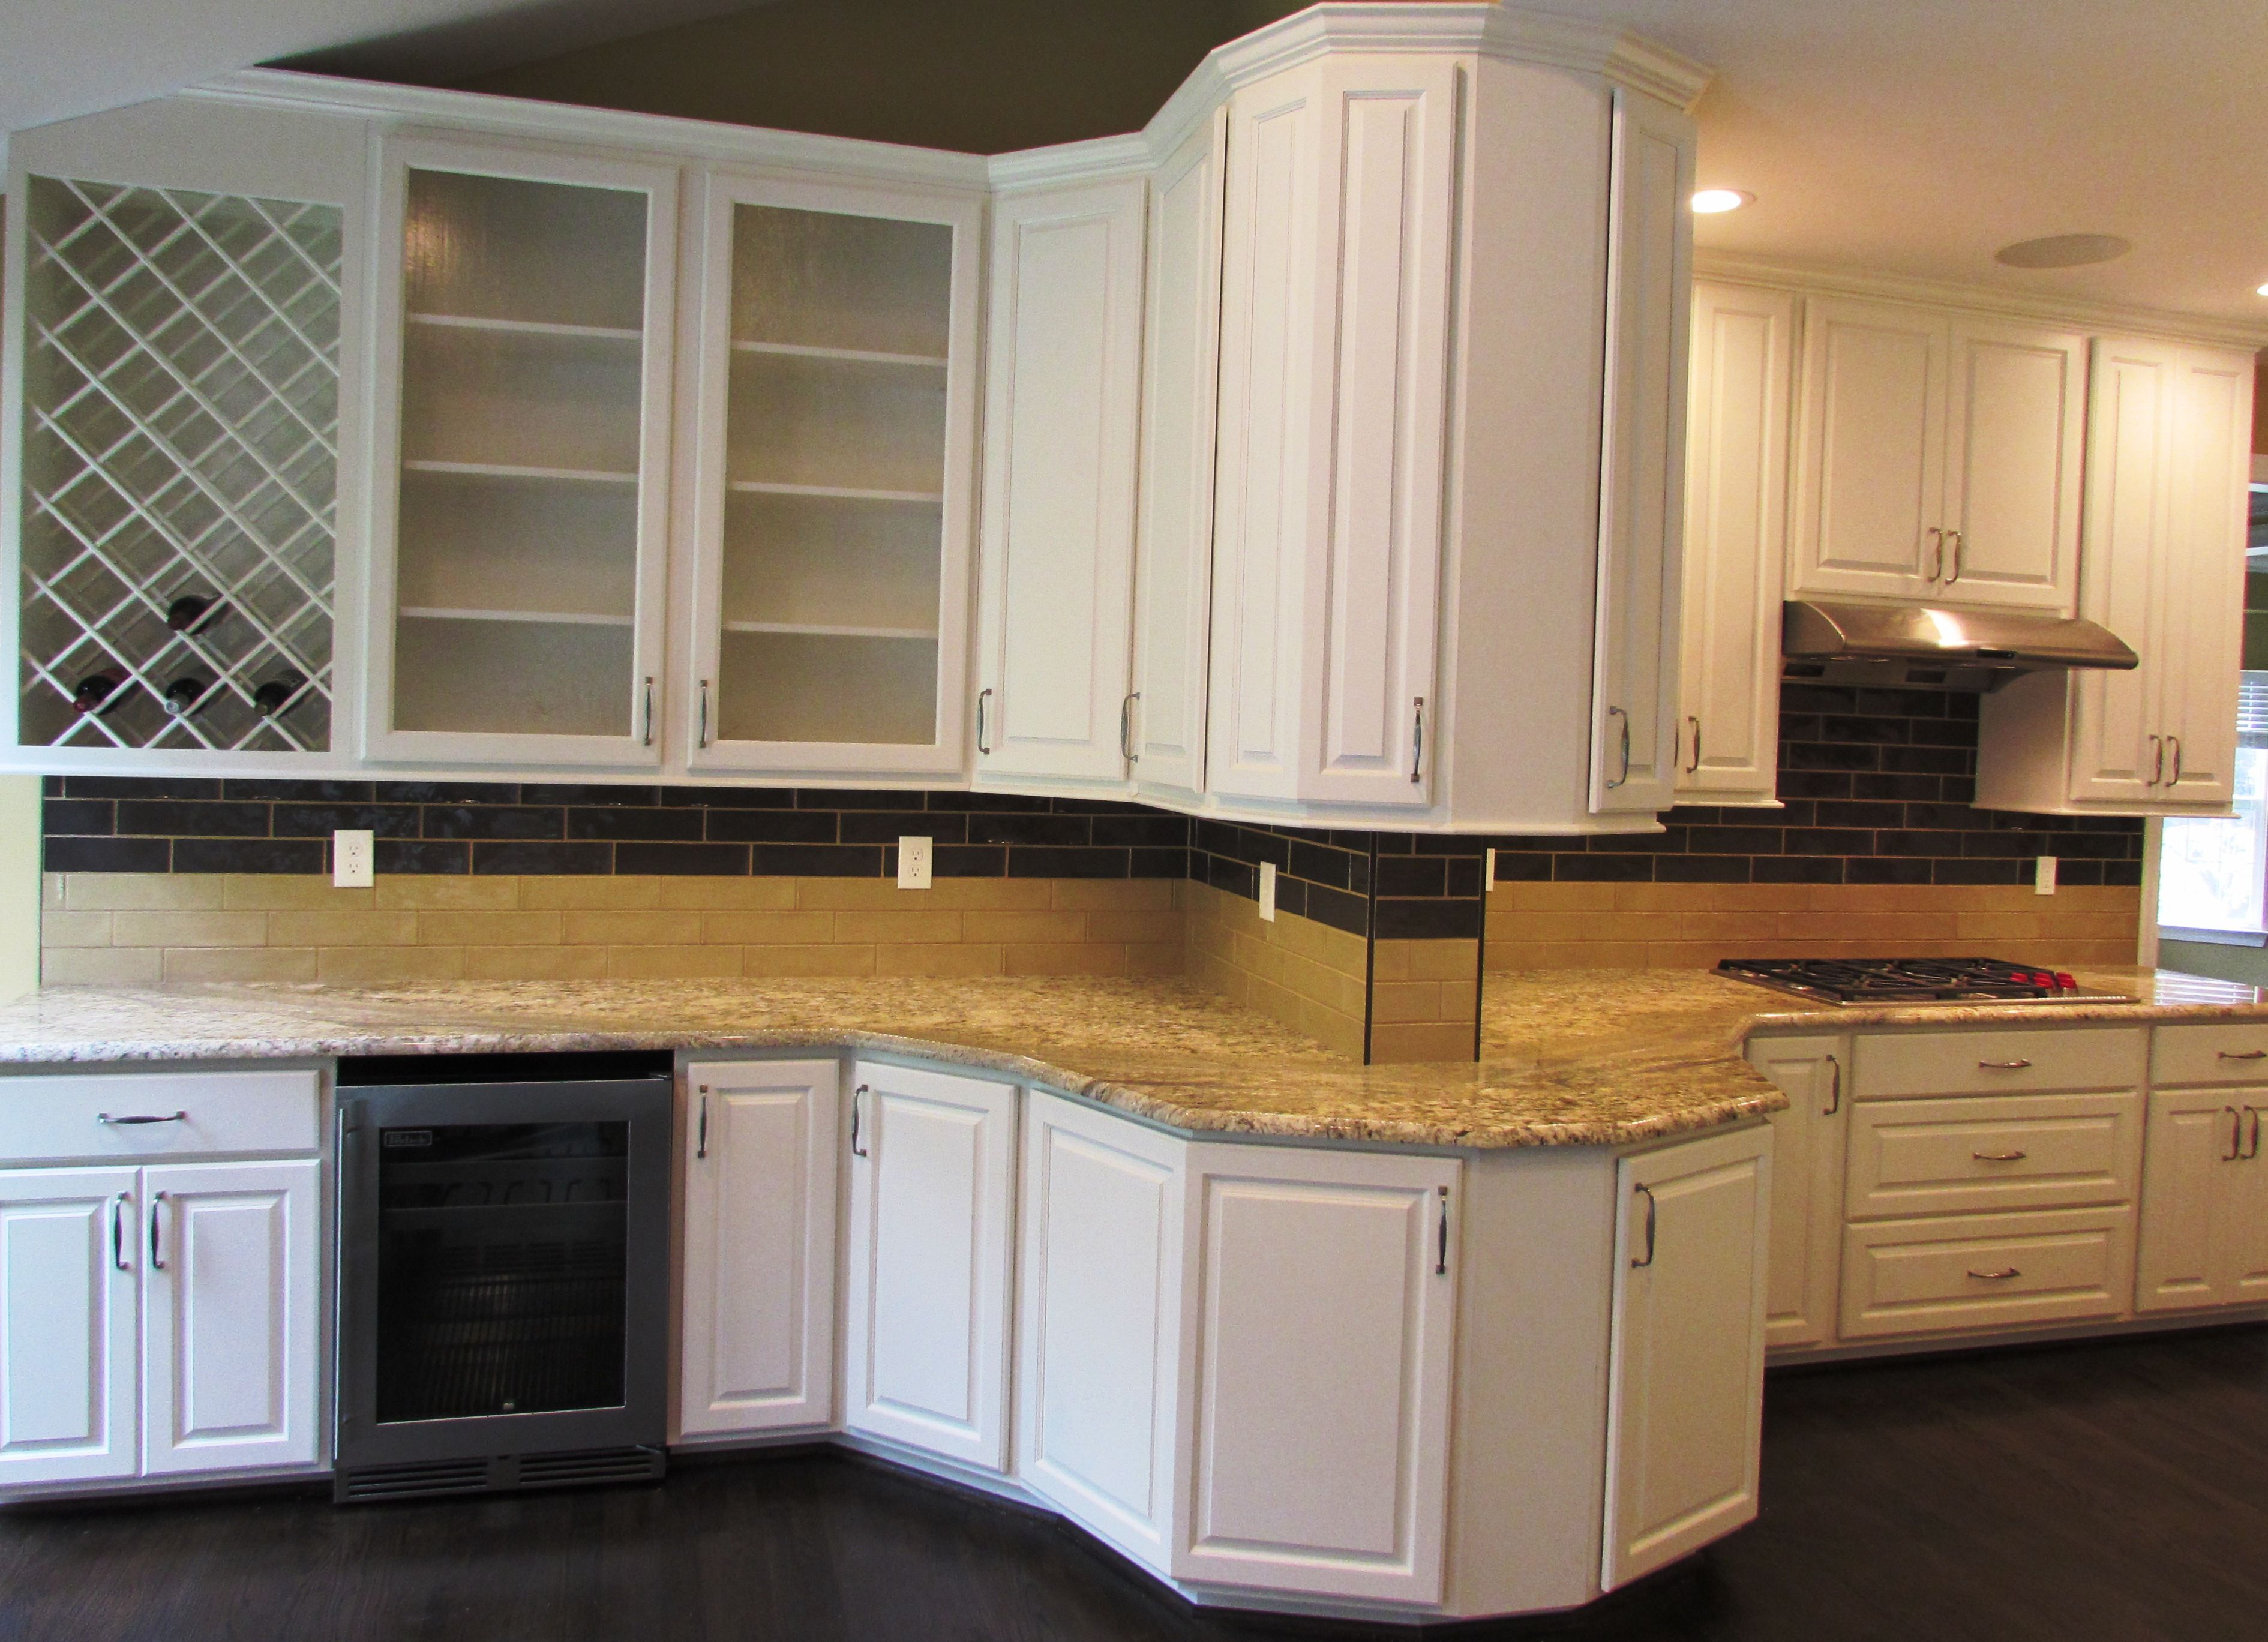 New kitchen remodel in new market md with white cabinetry and a wine cabinet with a beverage cooler